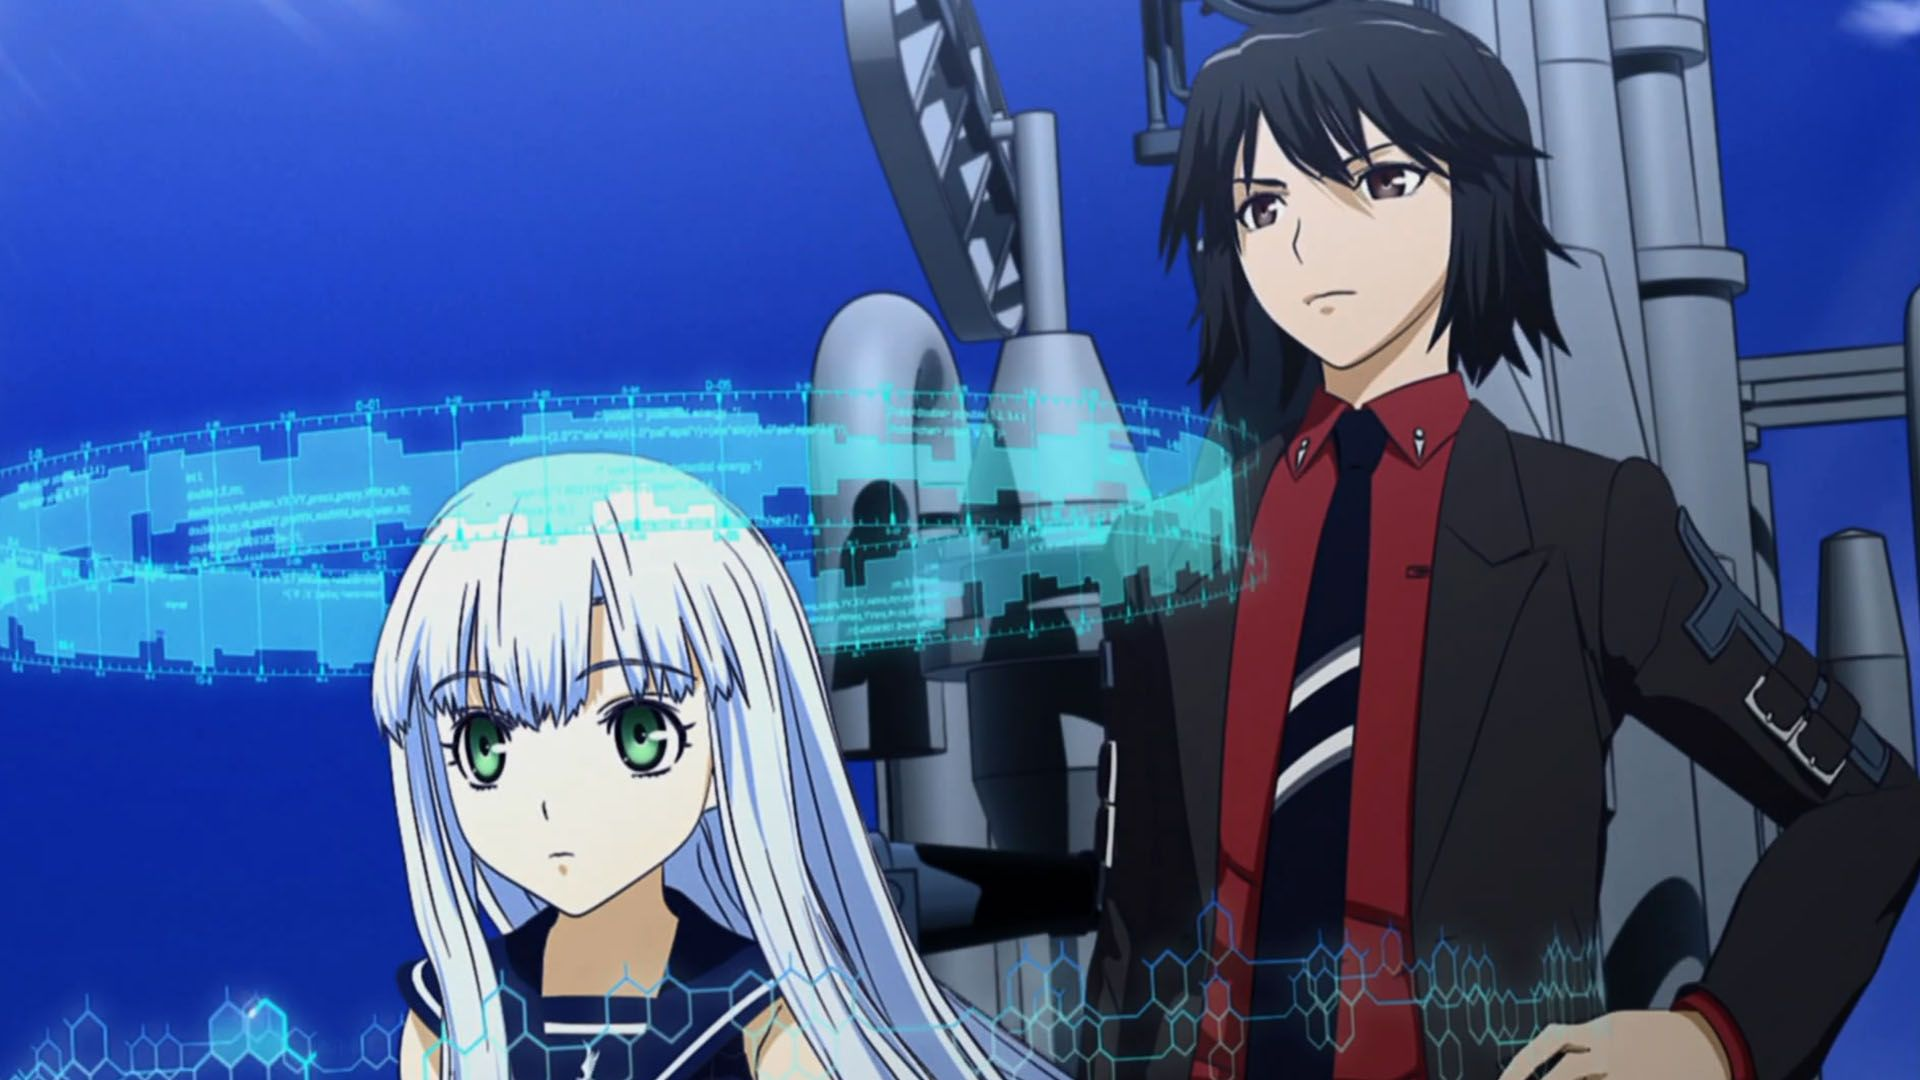 Arpeggio Of Blue Steel Arpeggio Of Blue Steel Arpeggio Of Blue